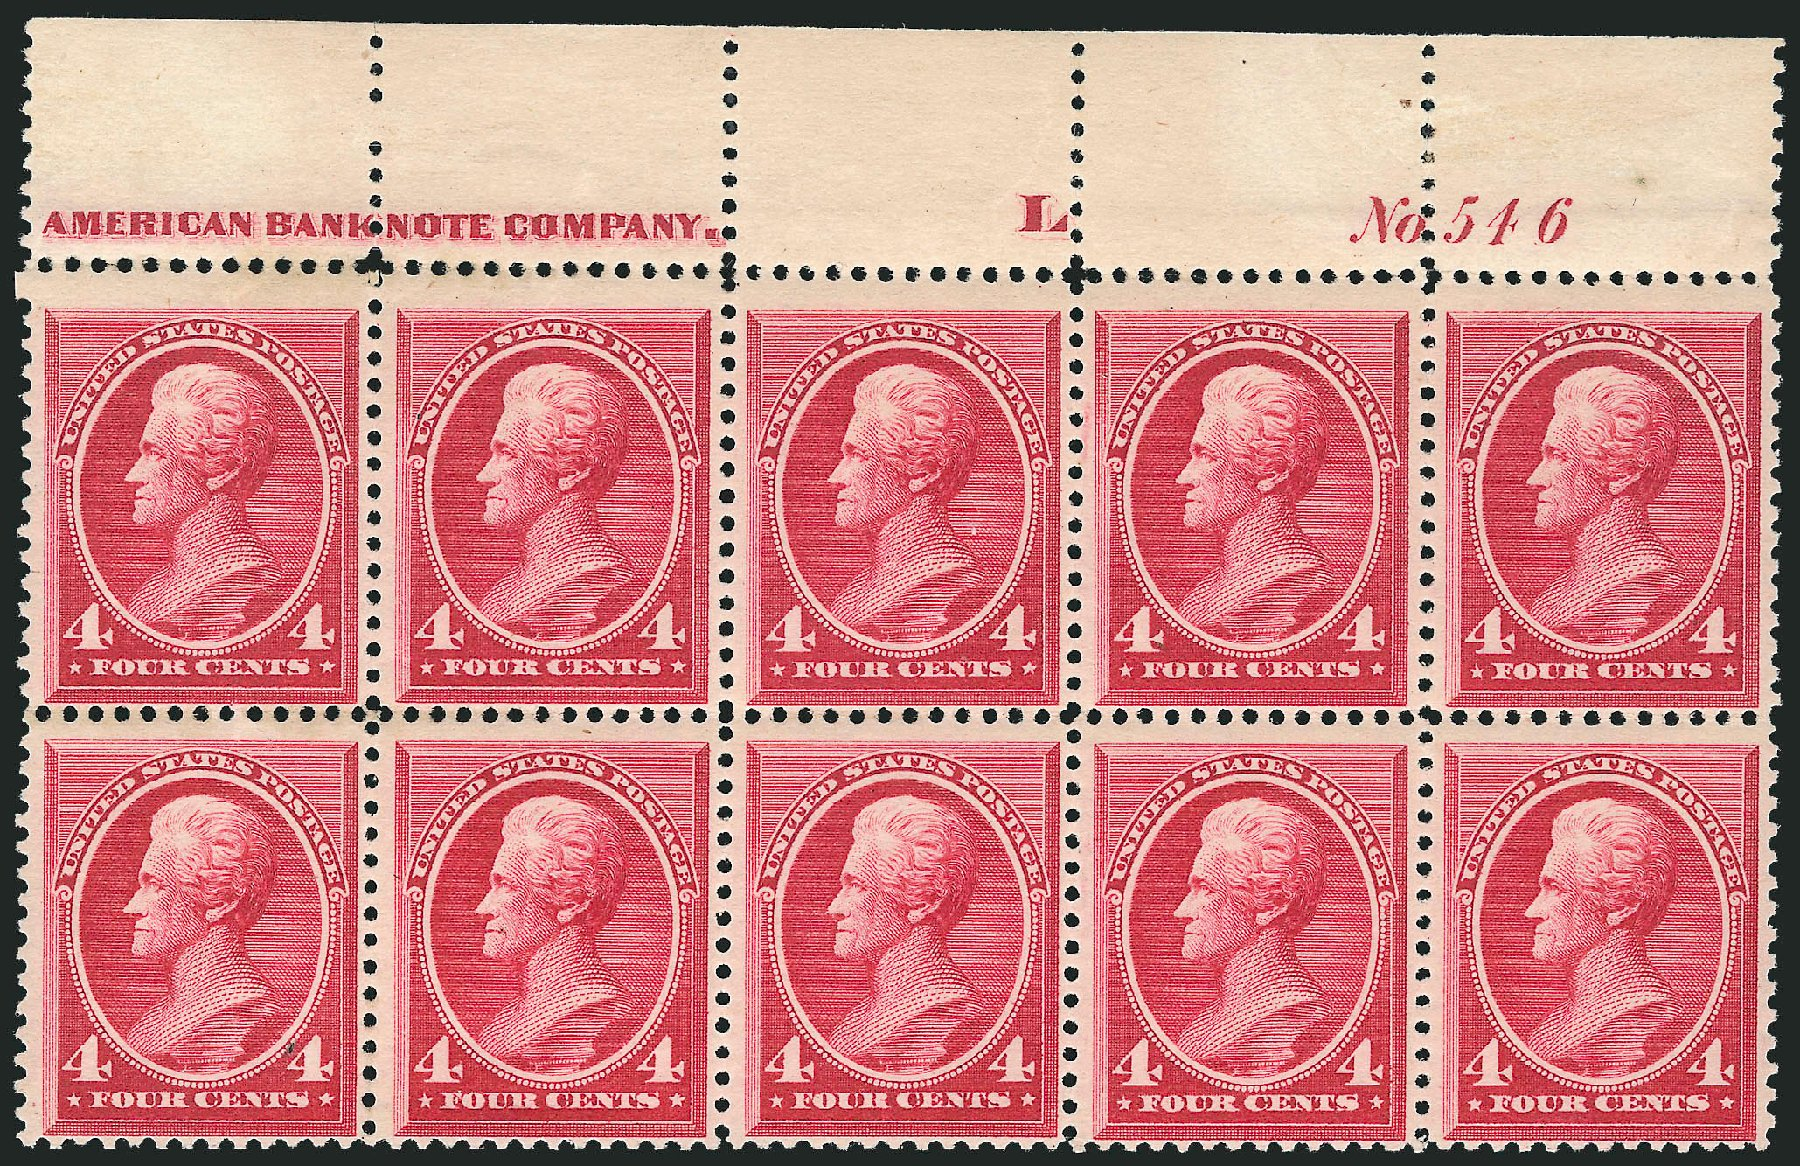 US Stamps Price Scott Catalogue 215: 4c 1883 Jackson. Robert Siegel Auction Galleries, Apr 2015, Sale 1096, Lot 376